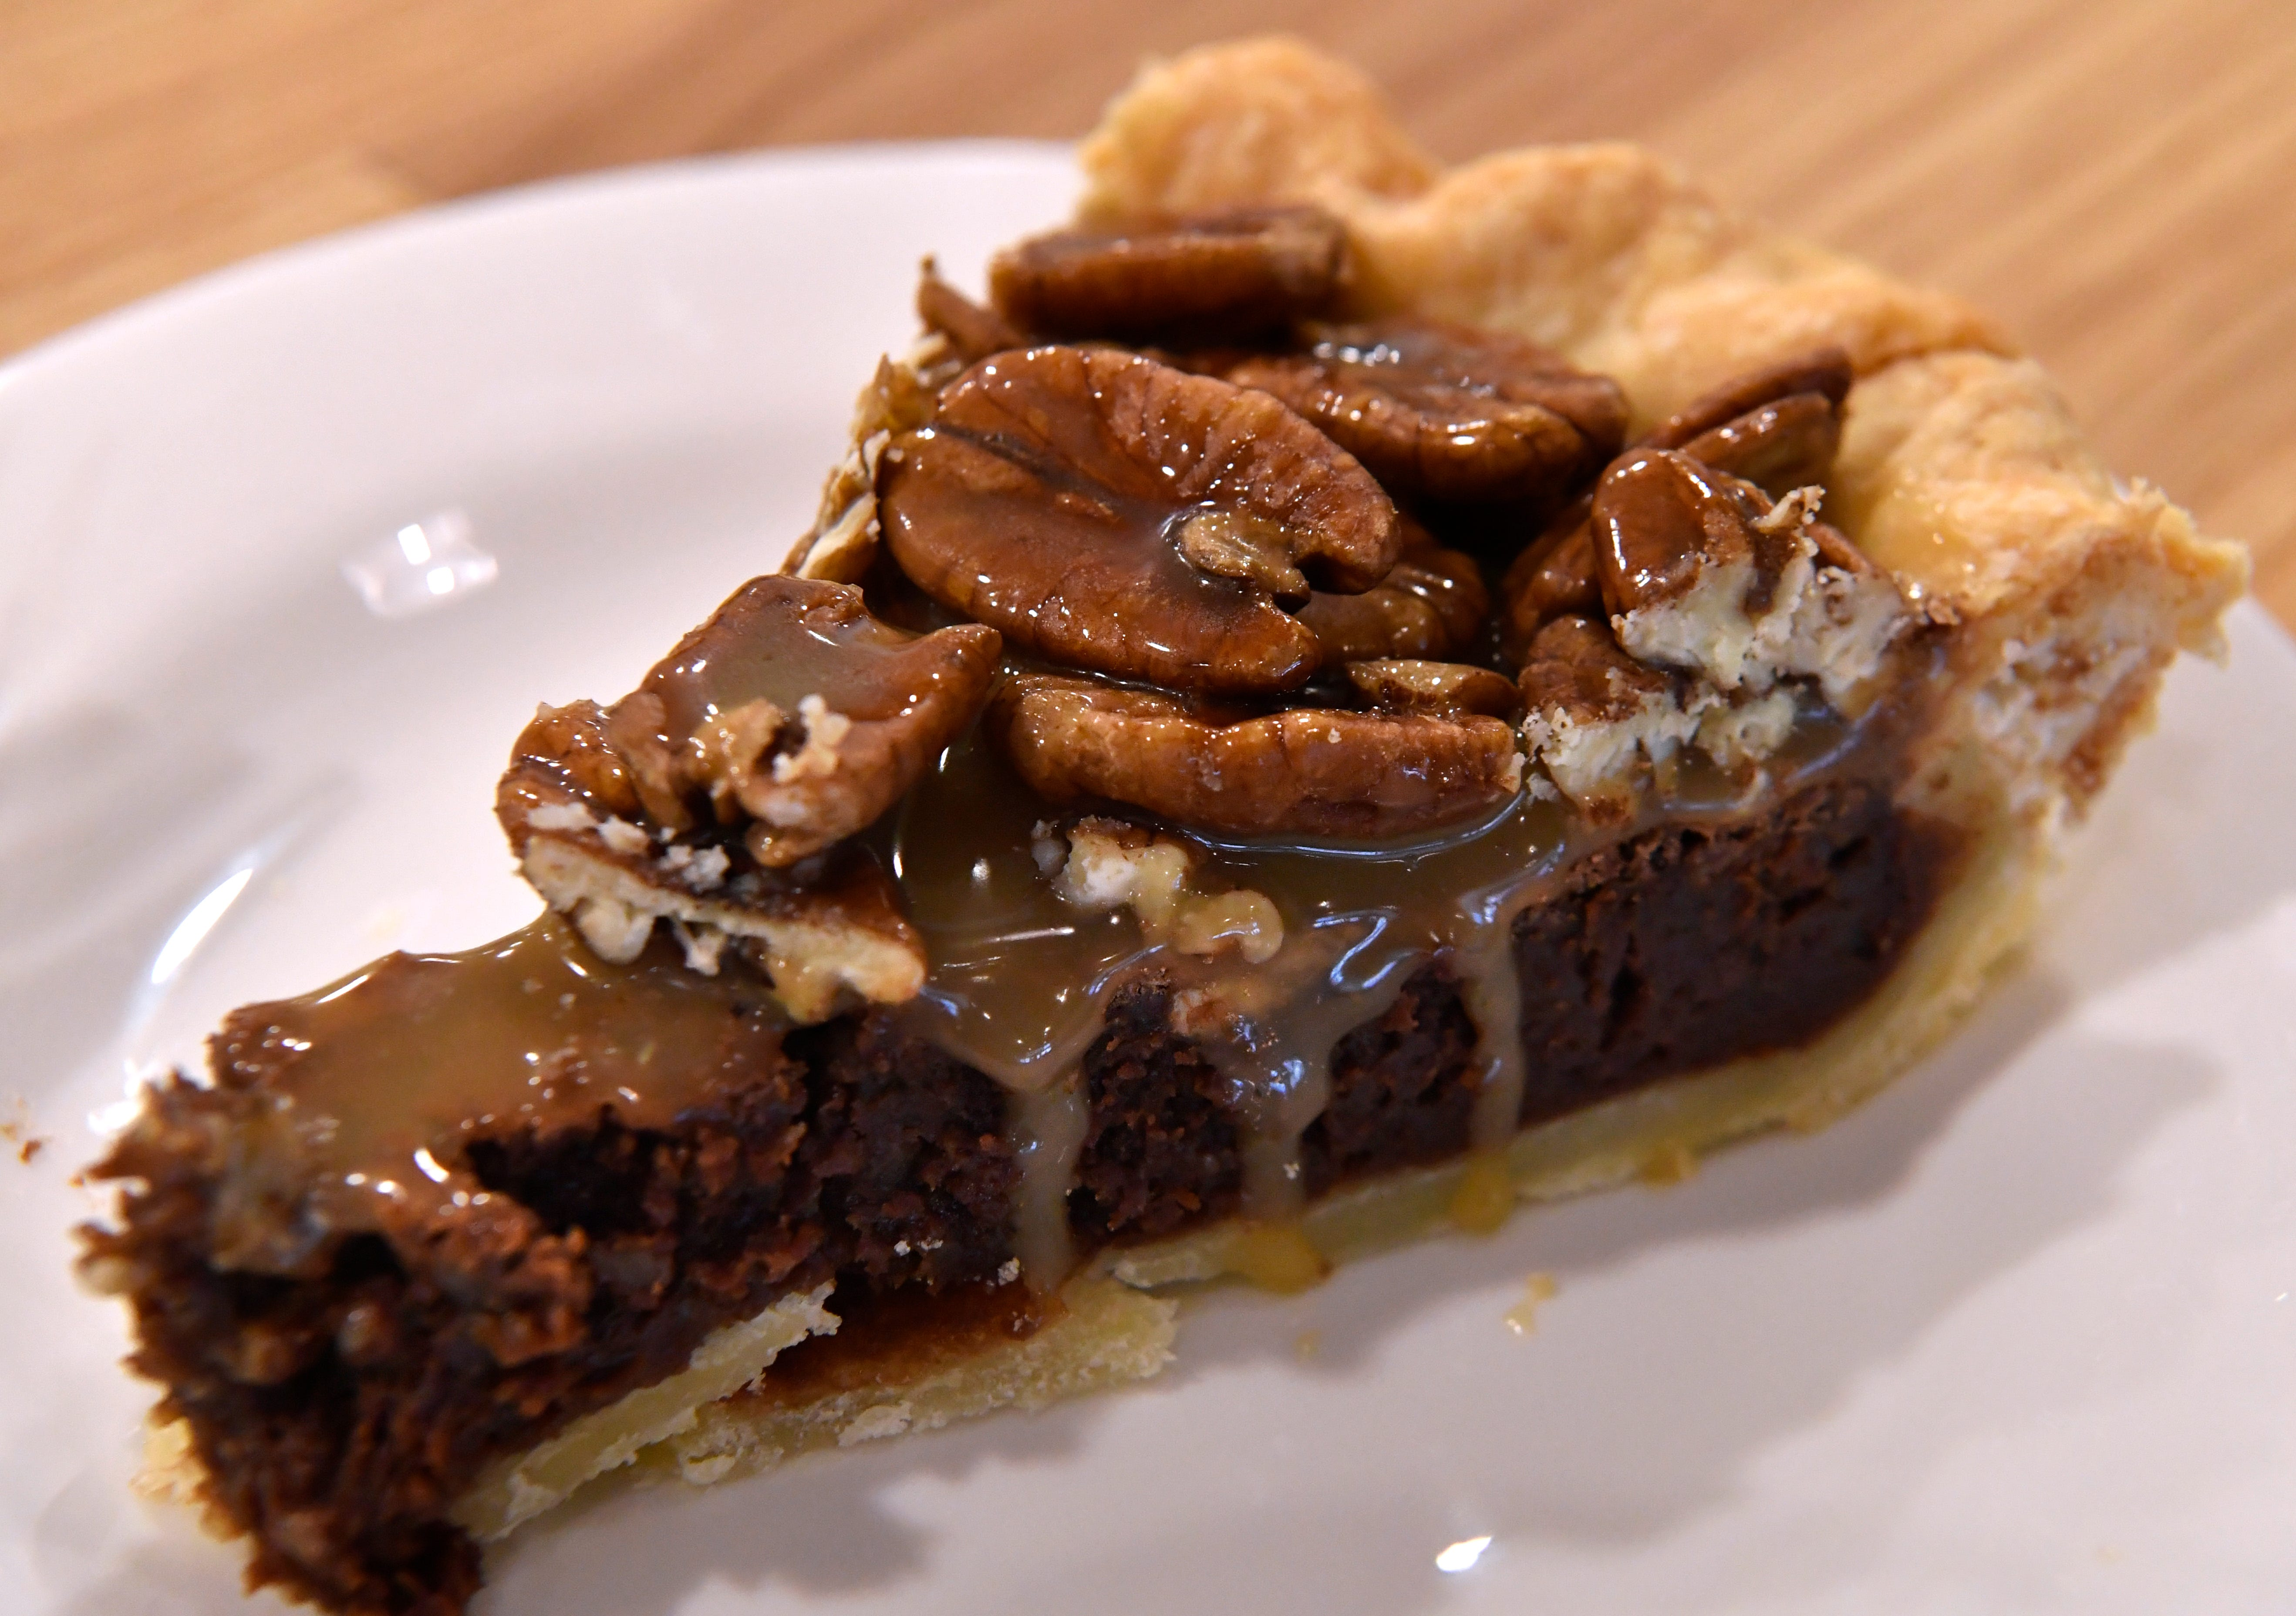 Kerry Hedges' sea salt chocolate pecan caramel pie. Slowpoke Farm Market features homemade pies, bread, and other foods.